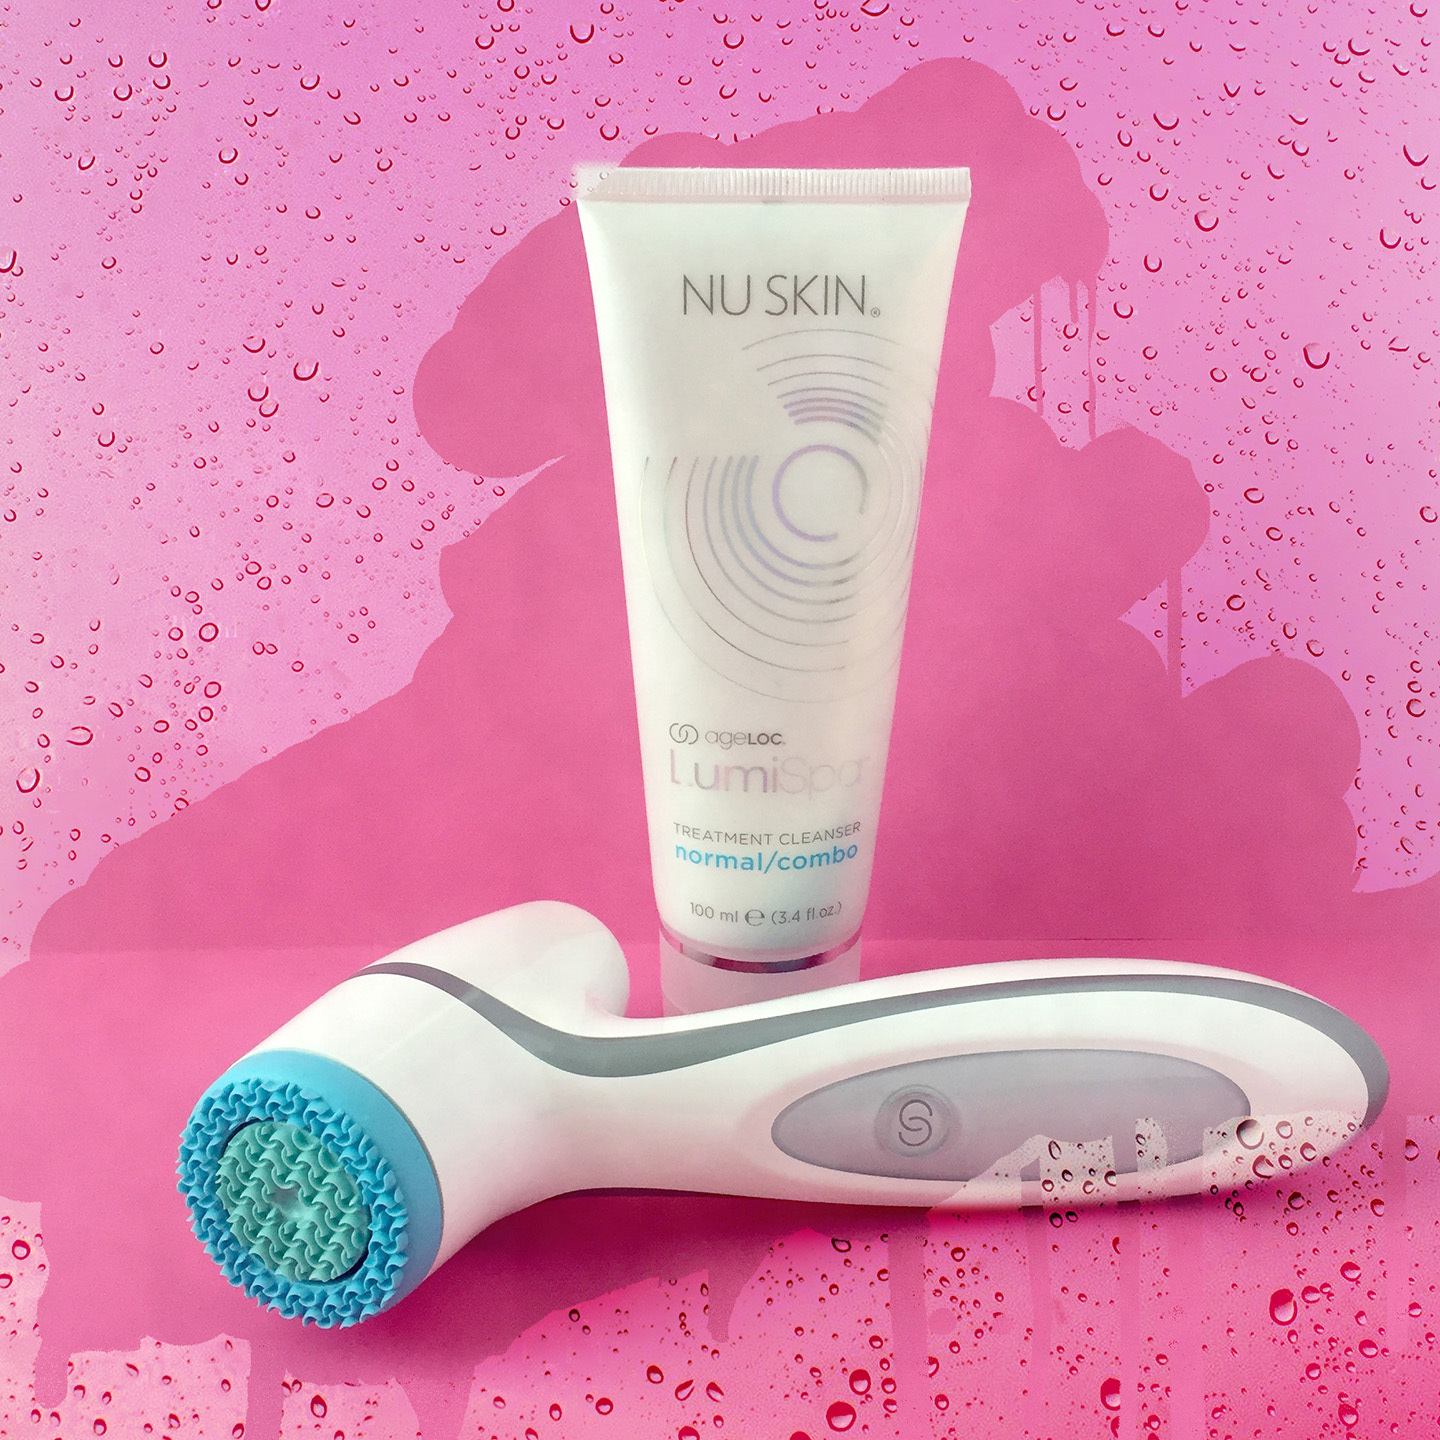 ageLOC LumiSpa from Nu Skin can be used with one of five specially formulated cleansers, designed for your specific skin type